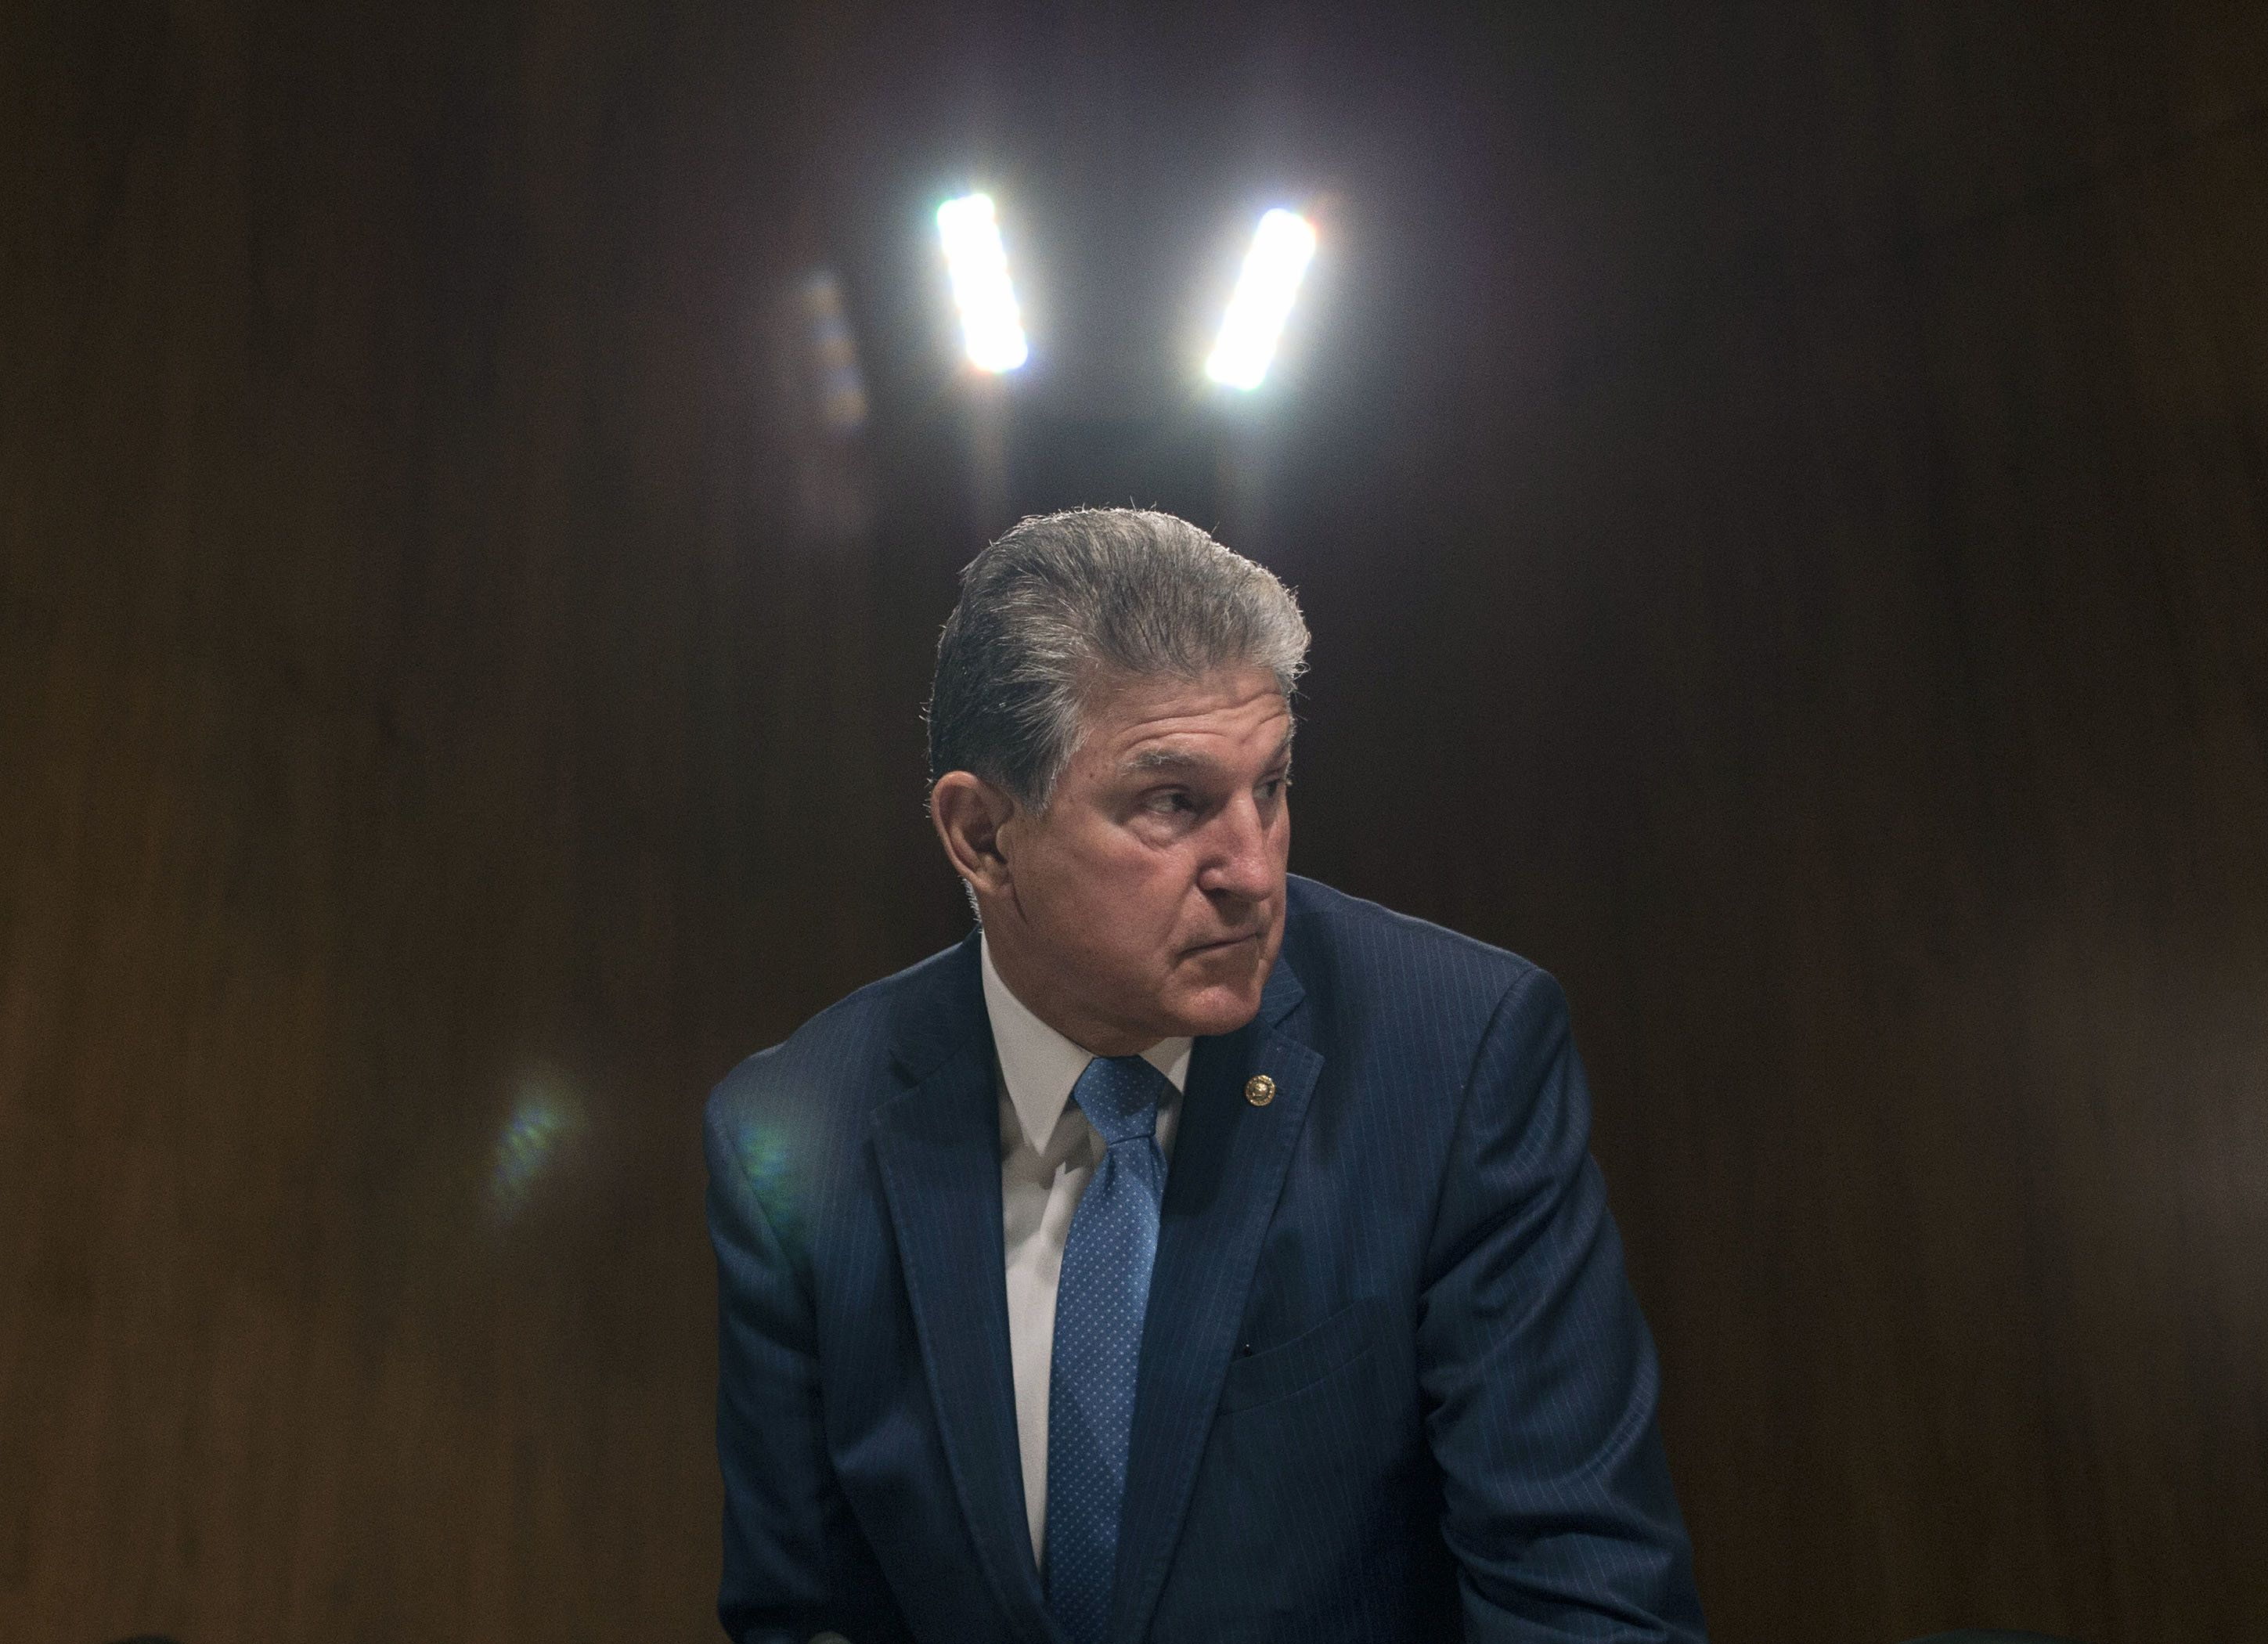 US Senator Joe Manchin (D-WV) looks on before the arrival of US Treasury Secretary Steven Mnuchin during a Senate Appropriations Committee for Financial Services hearing on the proposed FY2019 budget for the Treasury Department in Washington, DC on May 22, 2018. (Photo by Andrew CABALLERO-REYNOLDS / AFP)        (Photo credit should read ANDREW CABALLERO-REYNOLDS/AFP/Getty Images)